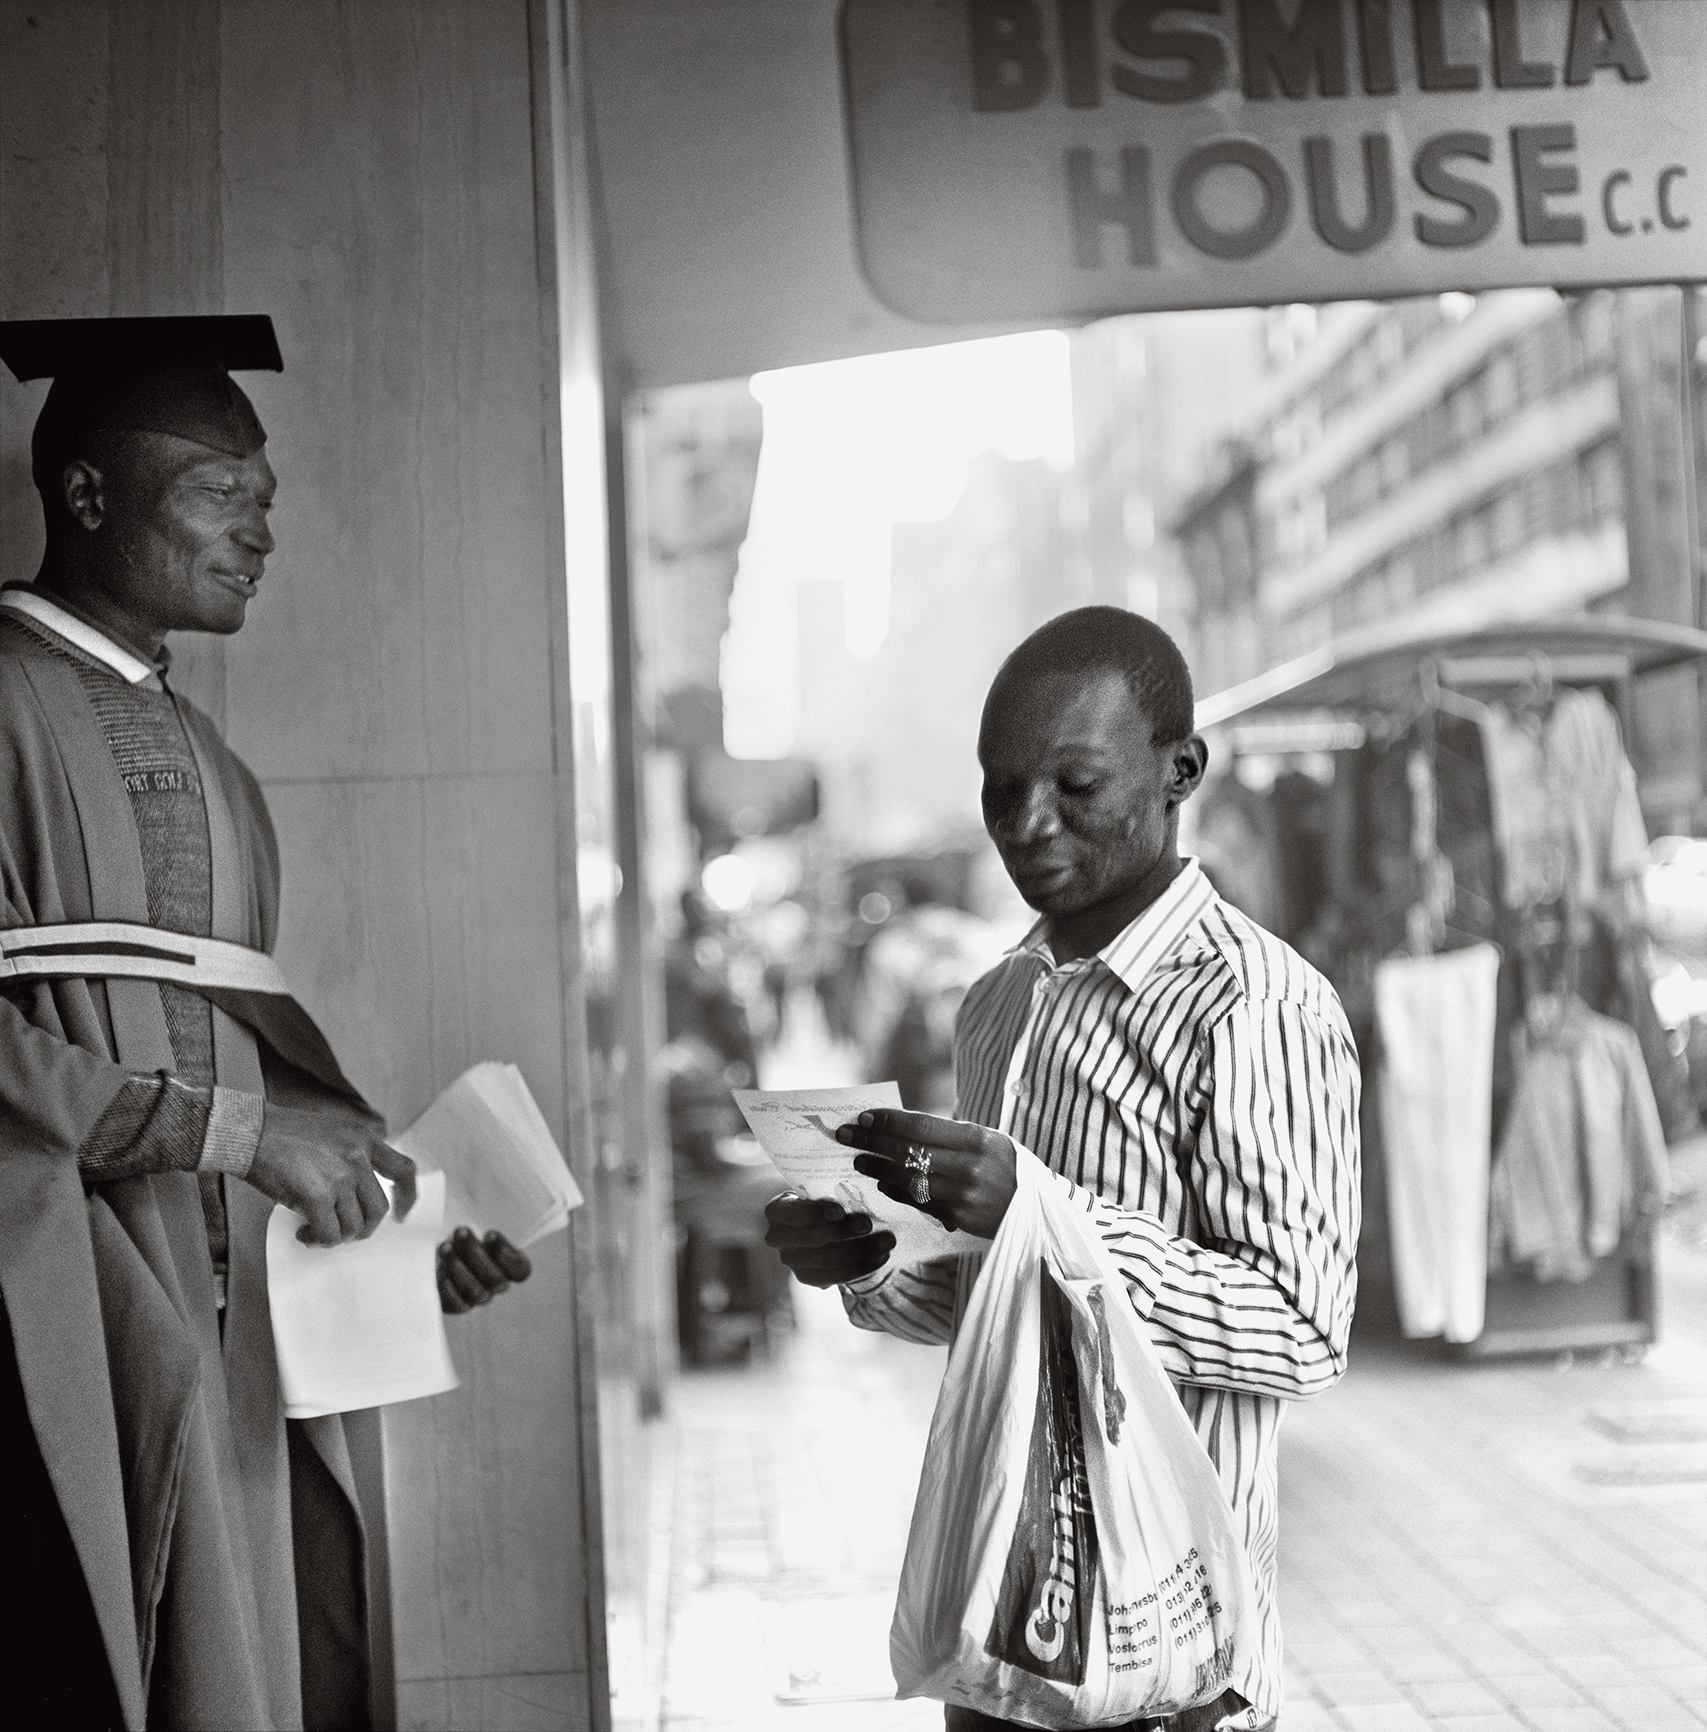 Sabelo Mlangeni, Outside Bismilla House on President Street, 2012, from the series Big City, 2002–ongoing Courtesy the artist